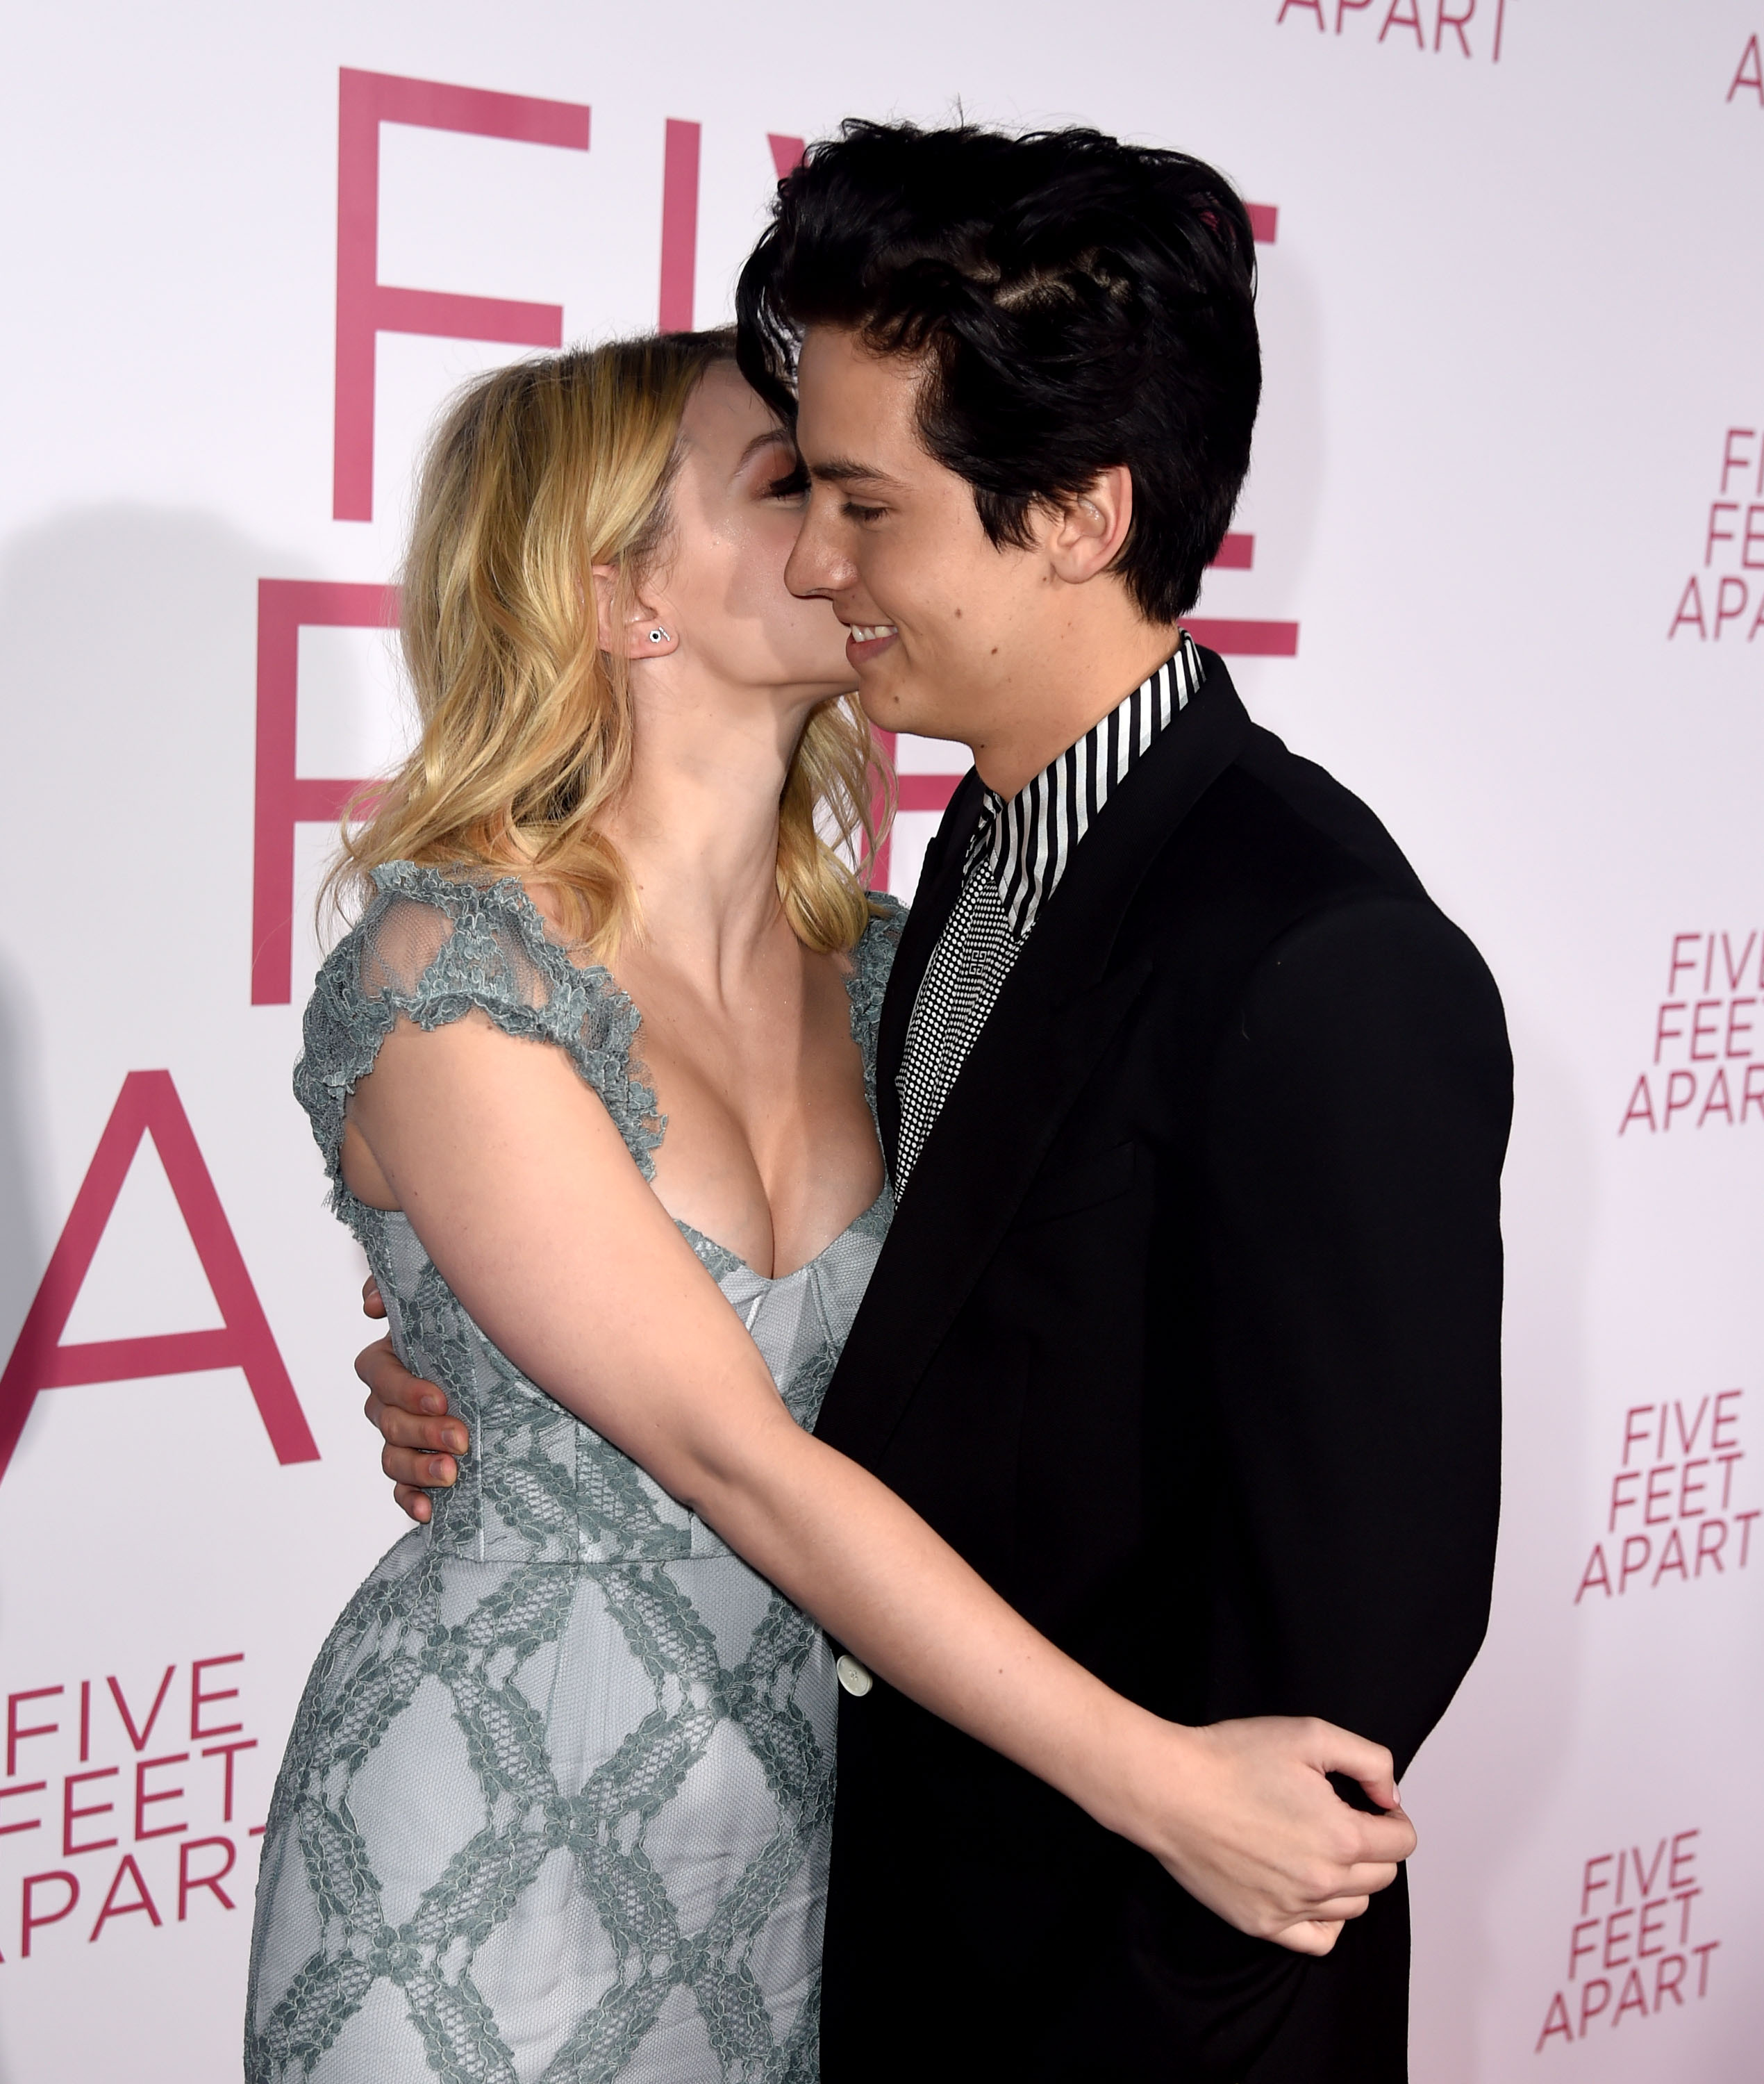 Lili Reinhart And Cole Sprouse Showed Rare PDA On Red